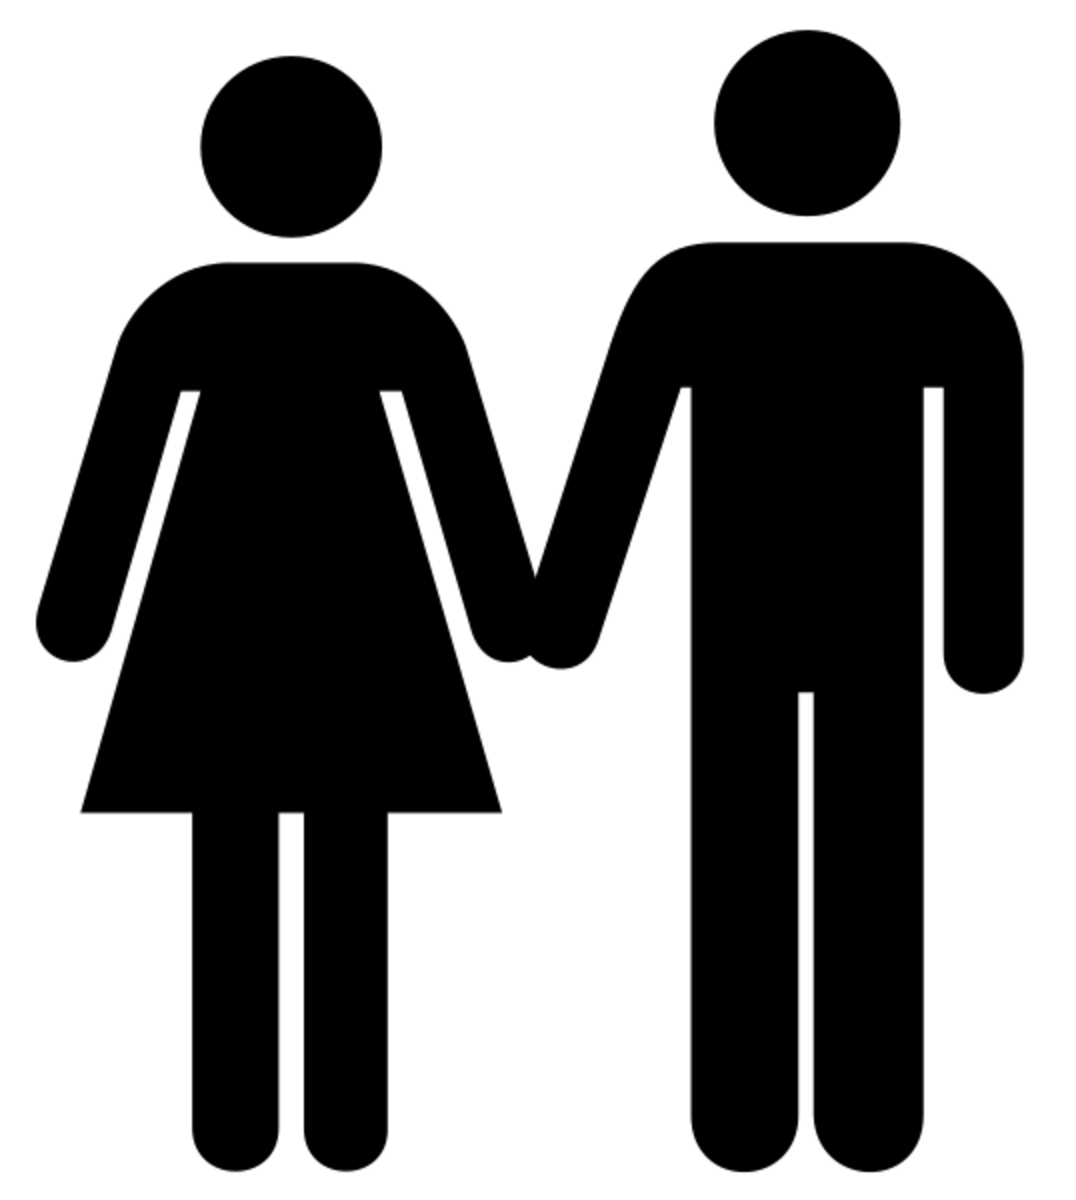 Universal symbol of a man and a woman holding hands